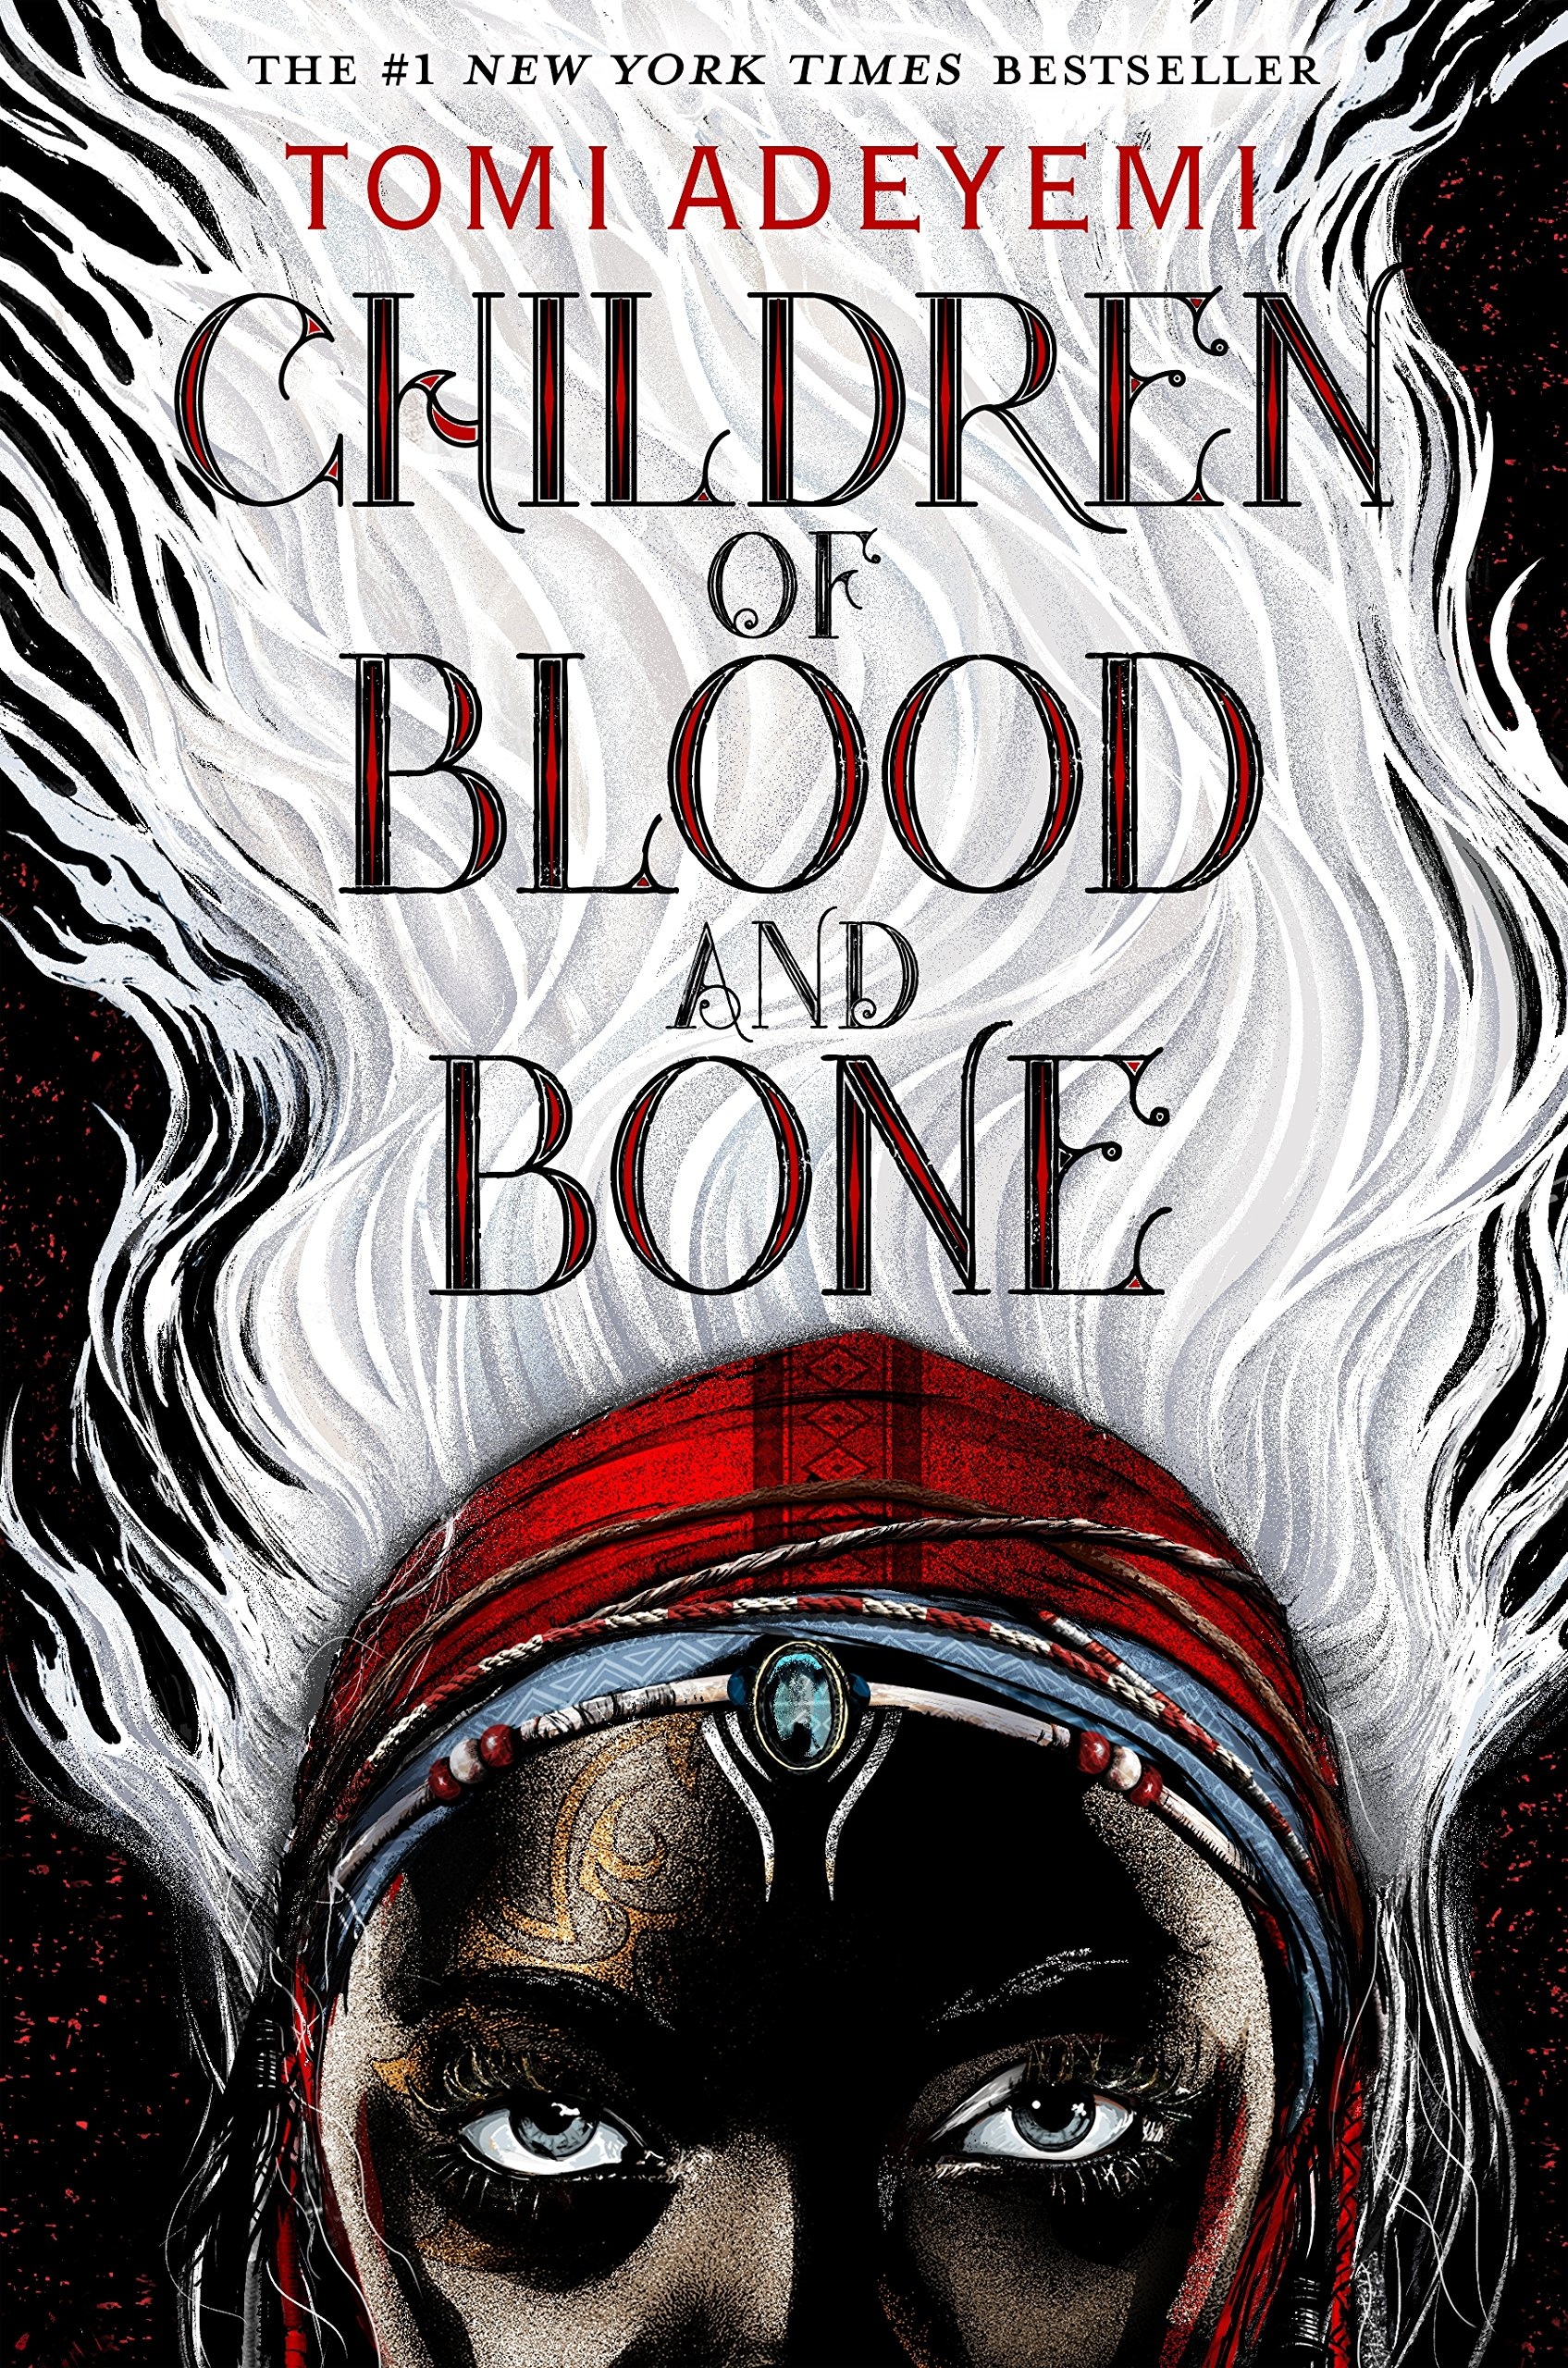 Cover of the book Children of Blood and Bone.